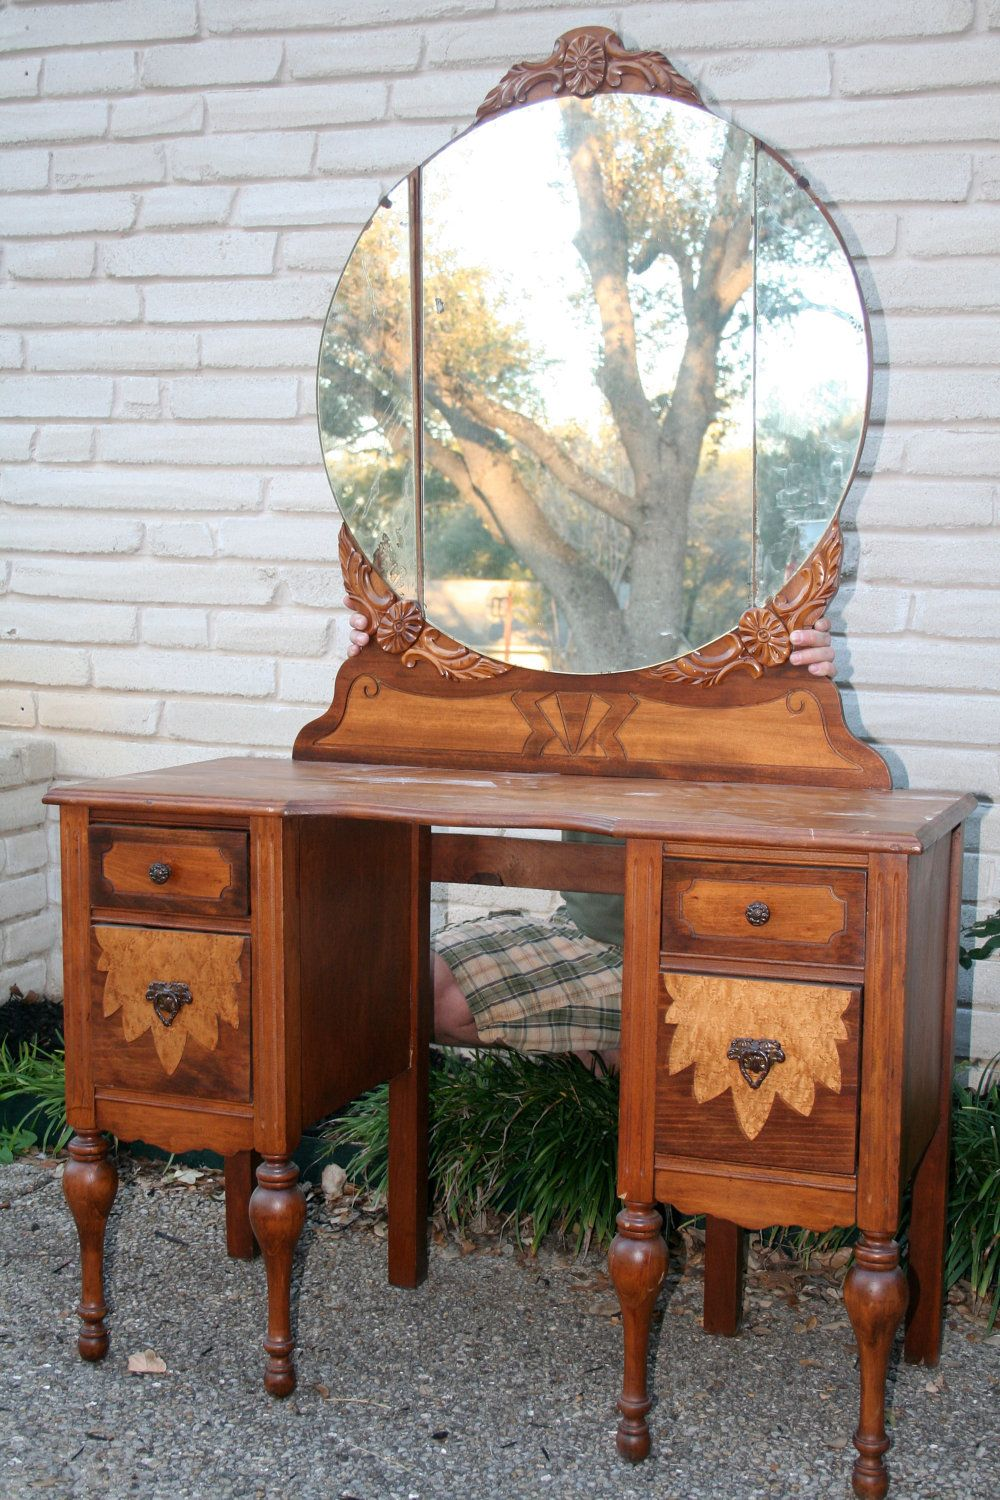 Antique Vanity Dressing Table Antique Vanity Dressing Table - Antique Vanity Dressing Table Antique Vanity Dressing Table